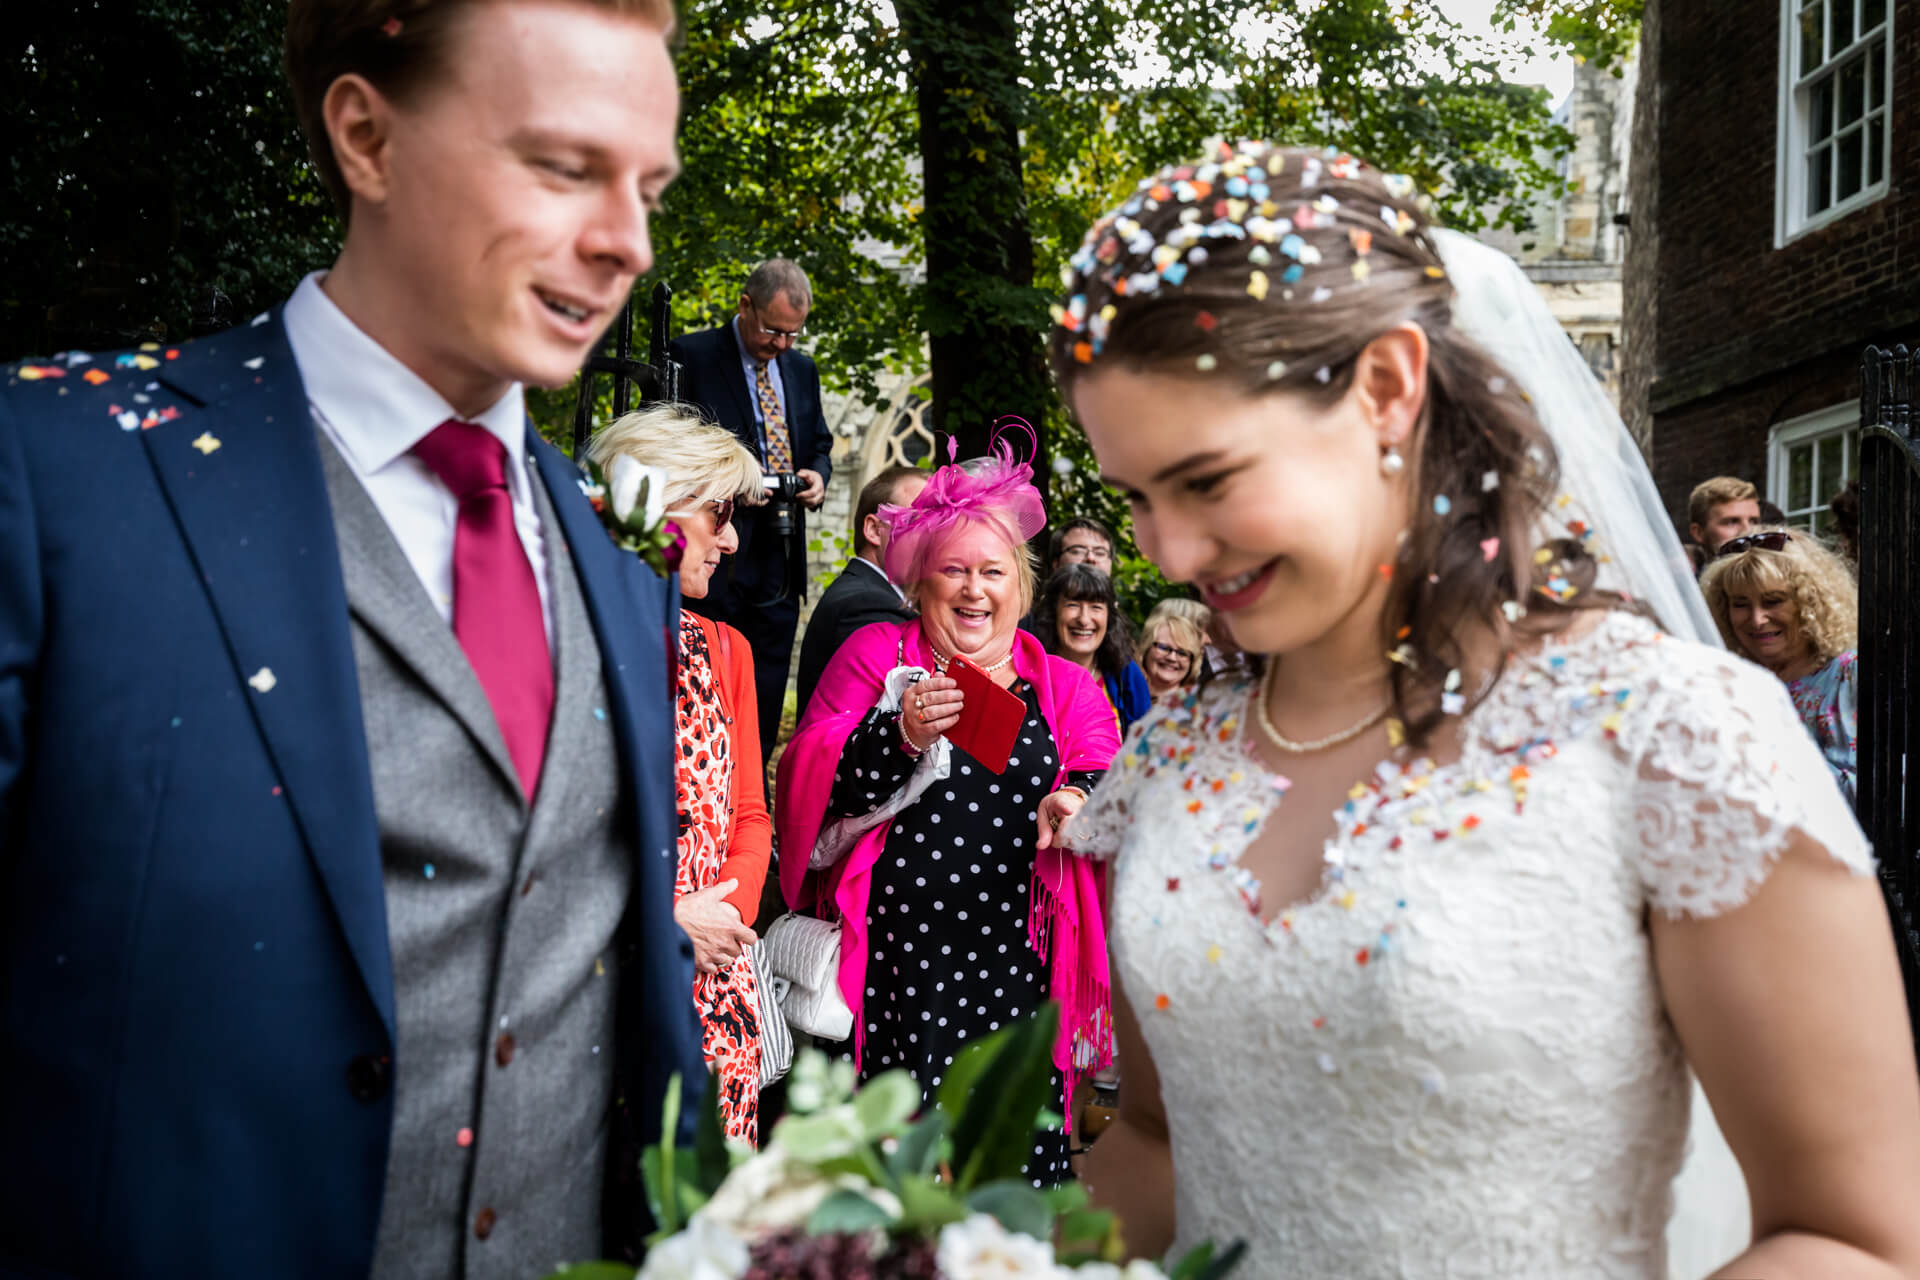 guest laughing at the bride and groom who are covered in confetti